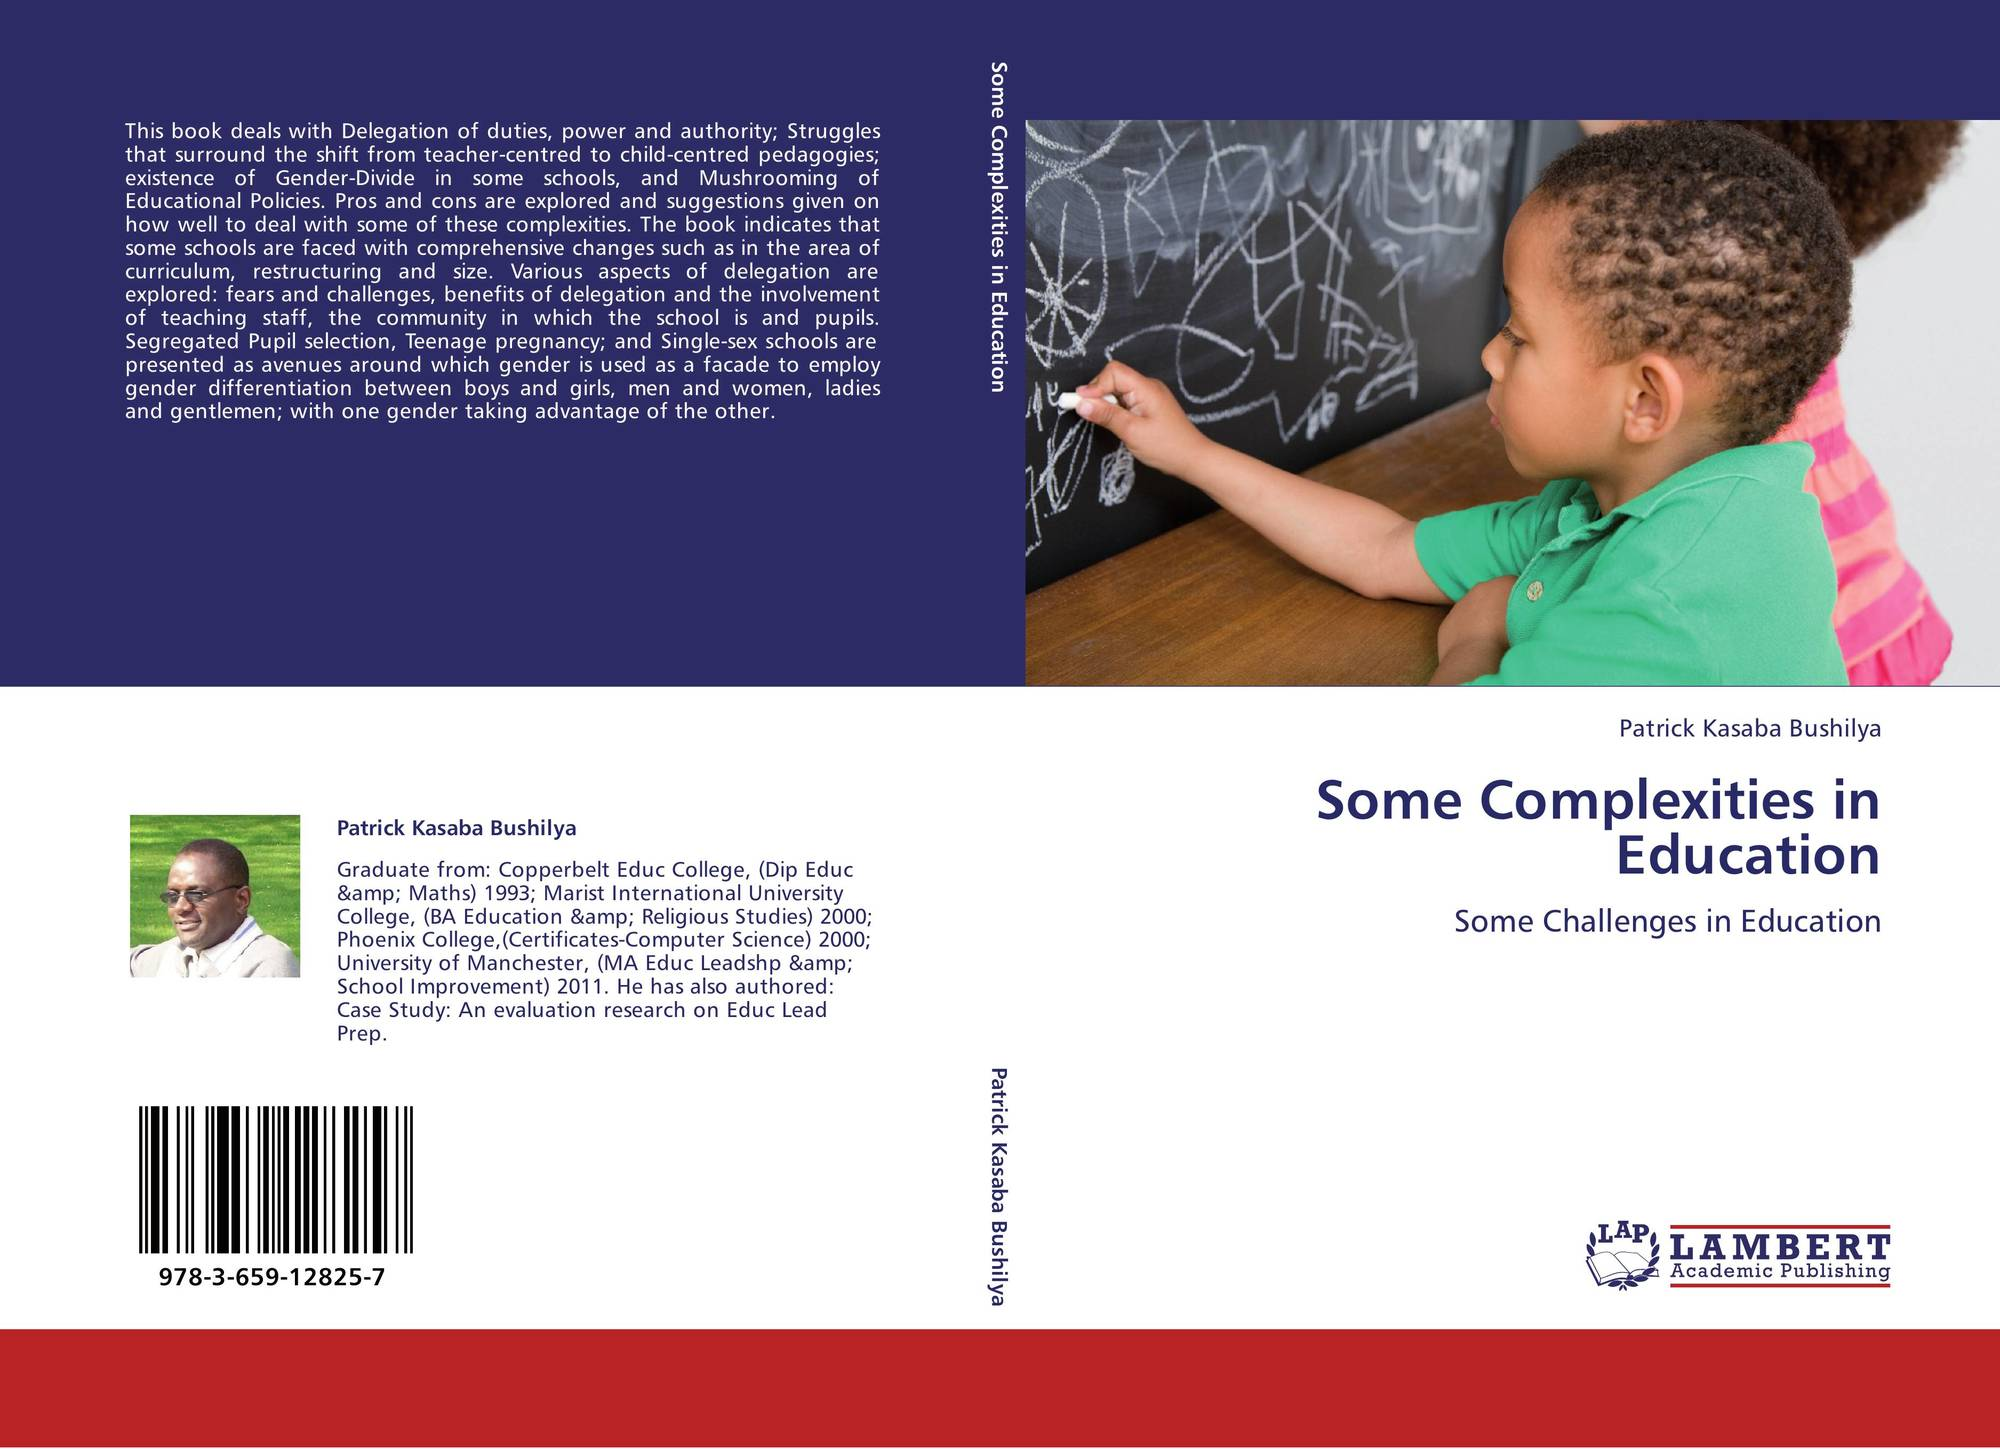 a comparative study on compulsory education If these groups of prospective teachers differ, this would have an impact on higher education, students' learning strategies and teachers' teaching strategies the study involved 65 randomly selected student teachers 33 were student teachers for compulsory school and 32 were music student teachers.